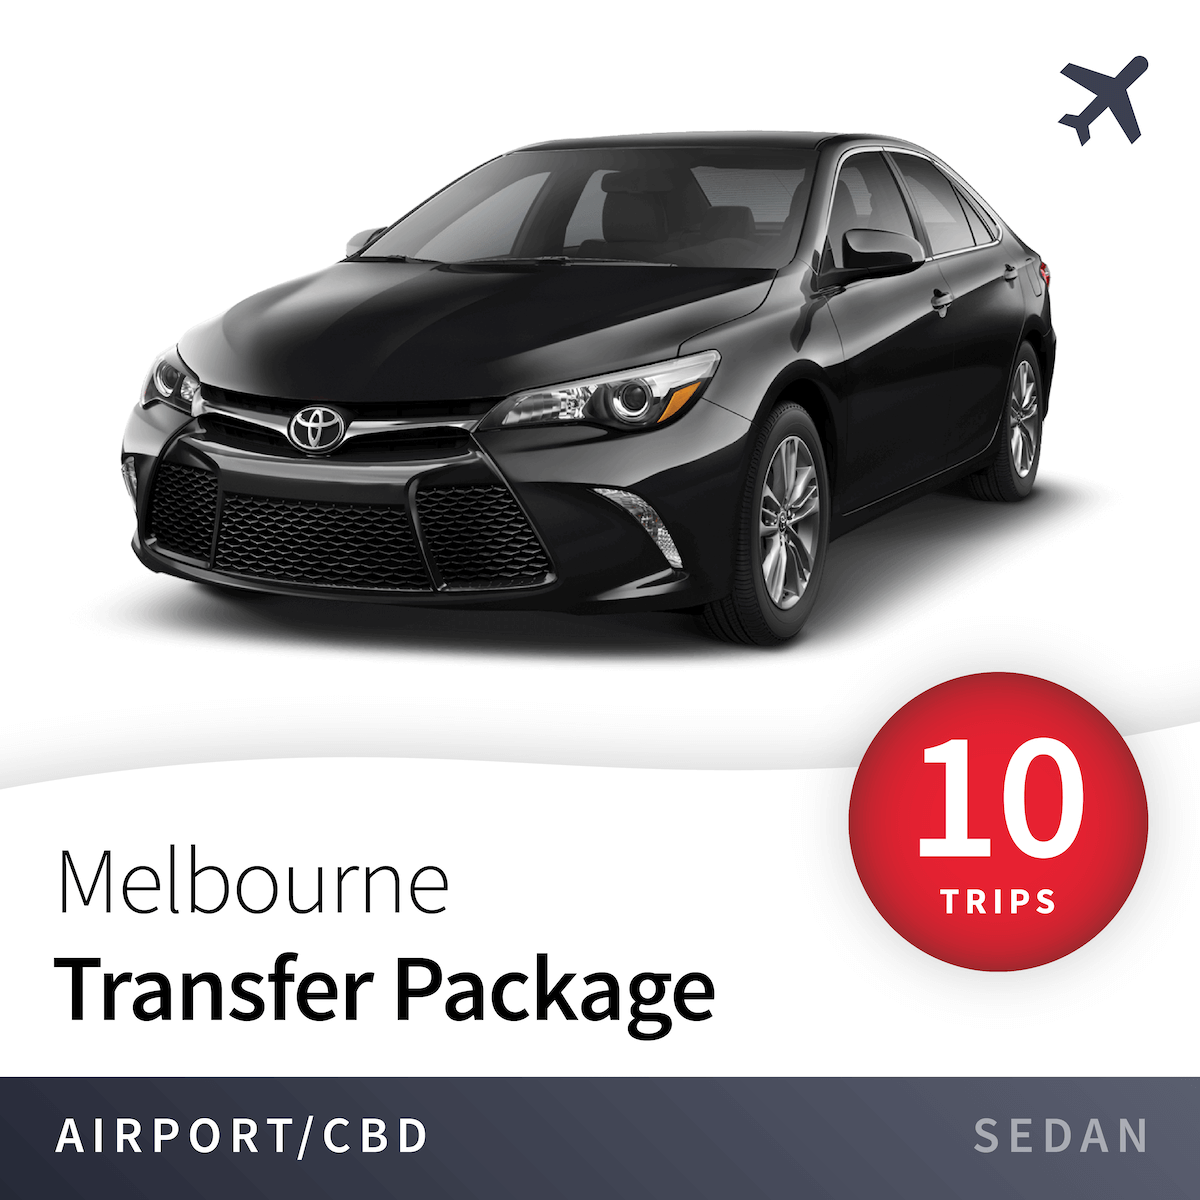 Melbourne Airport Transfer Package - Sedan (10 Trips) 9